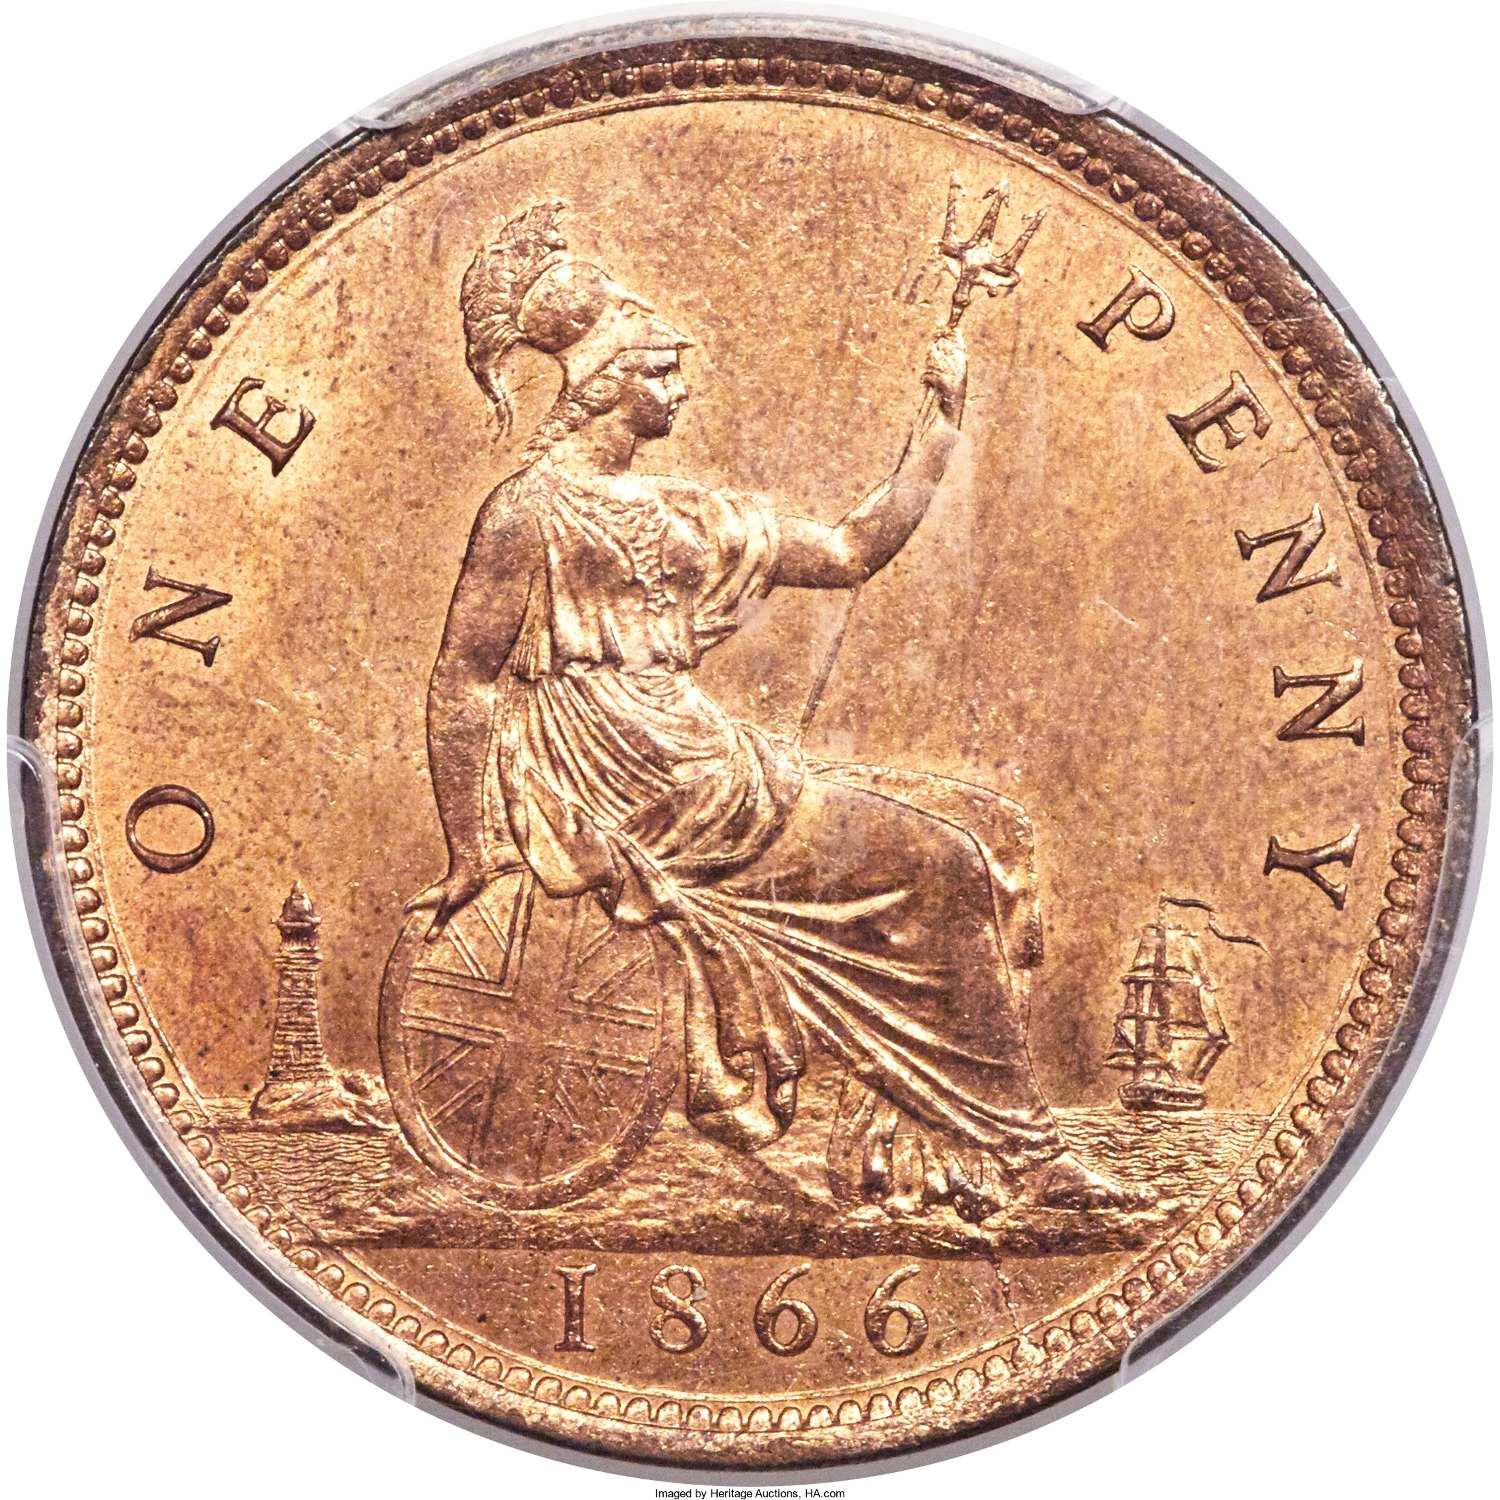 Penny 1866: Photo Great Britain 1866 penny